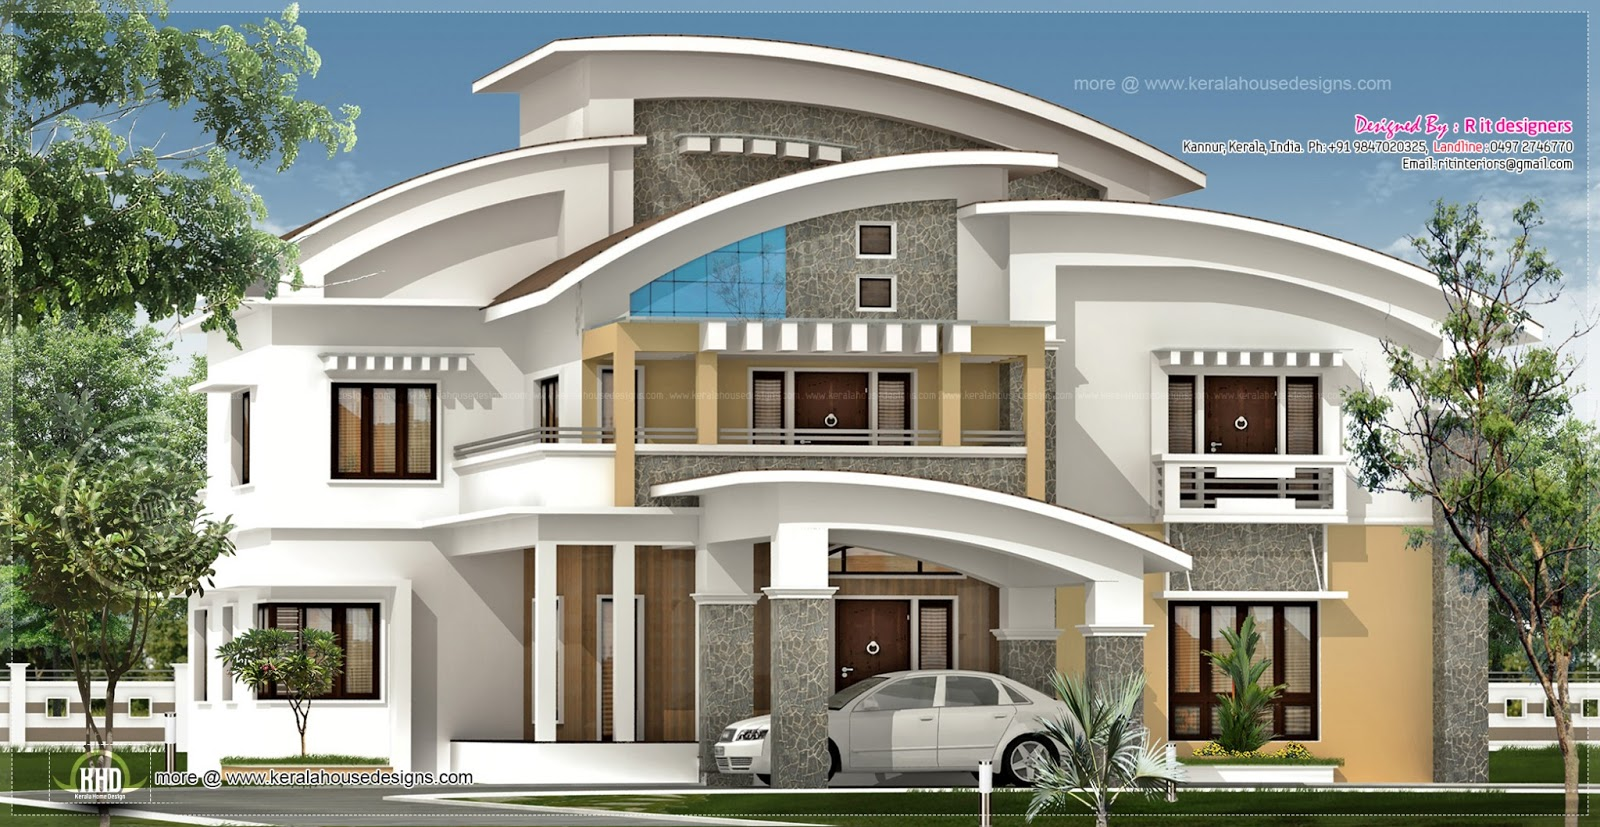 3750 square feet luxury villa exterior house design plans On luxury home design plans